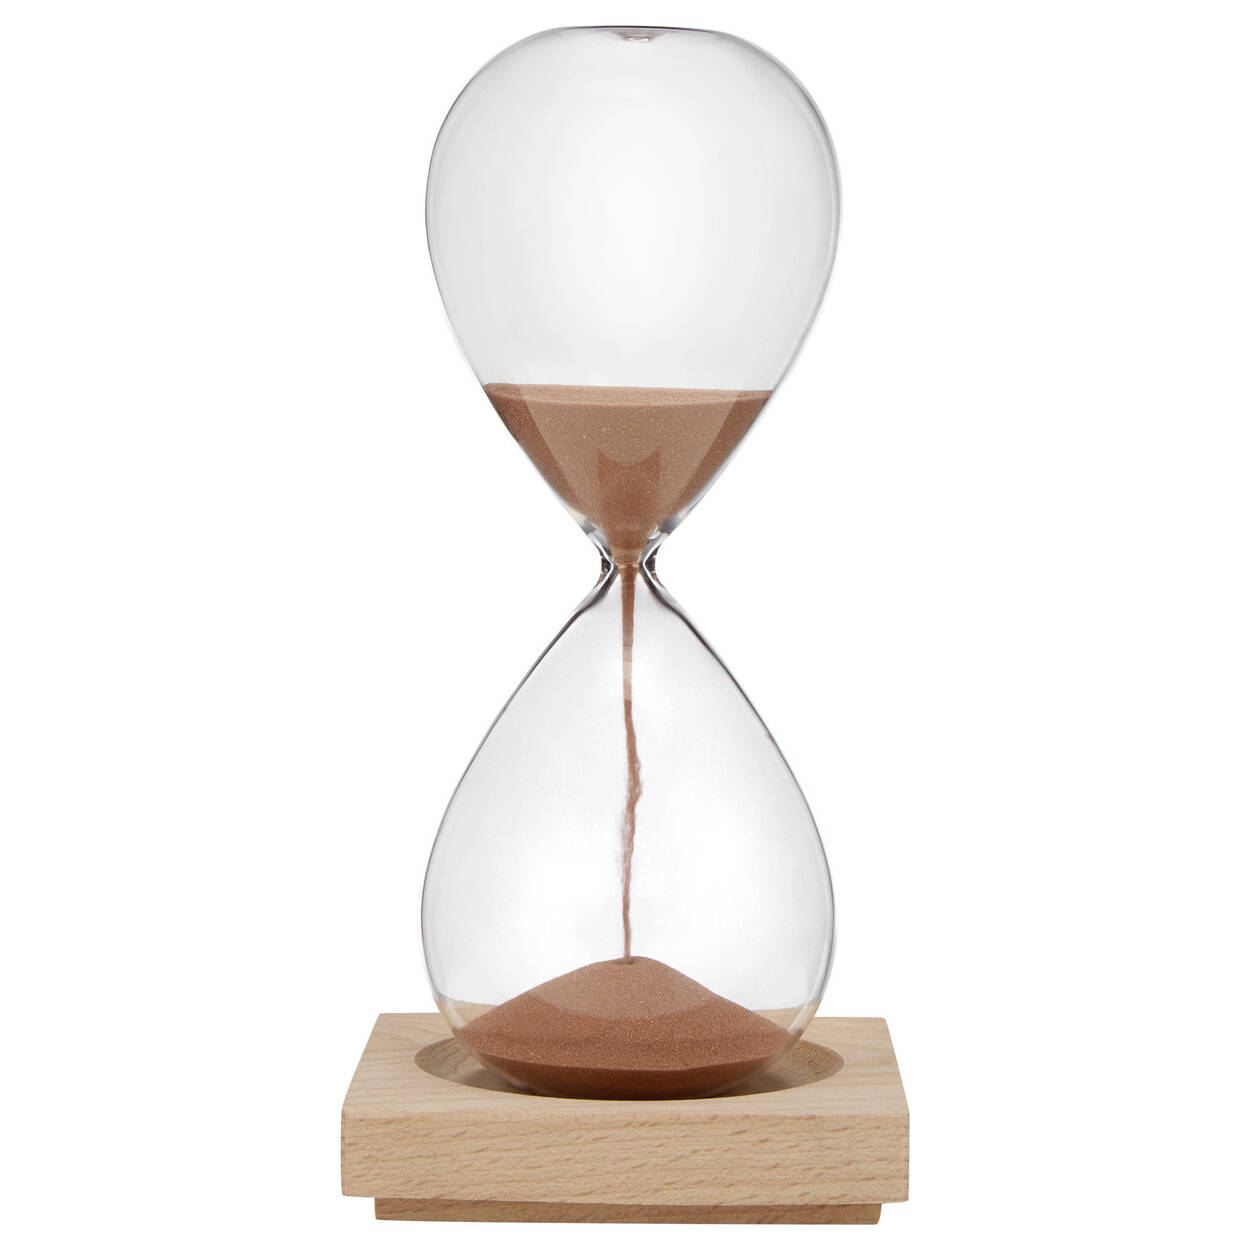 Decorative Hourglass With Wood Base Bouclaircom - Decorative-hourglass